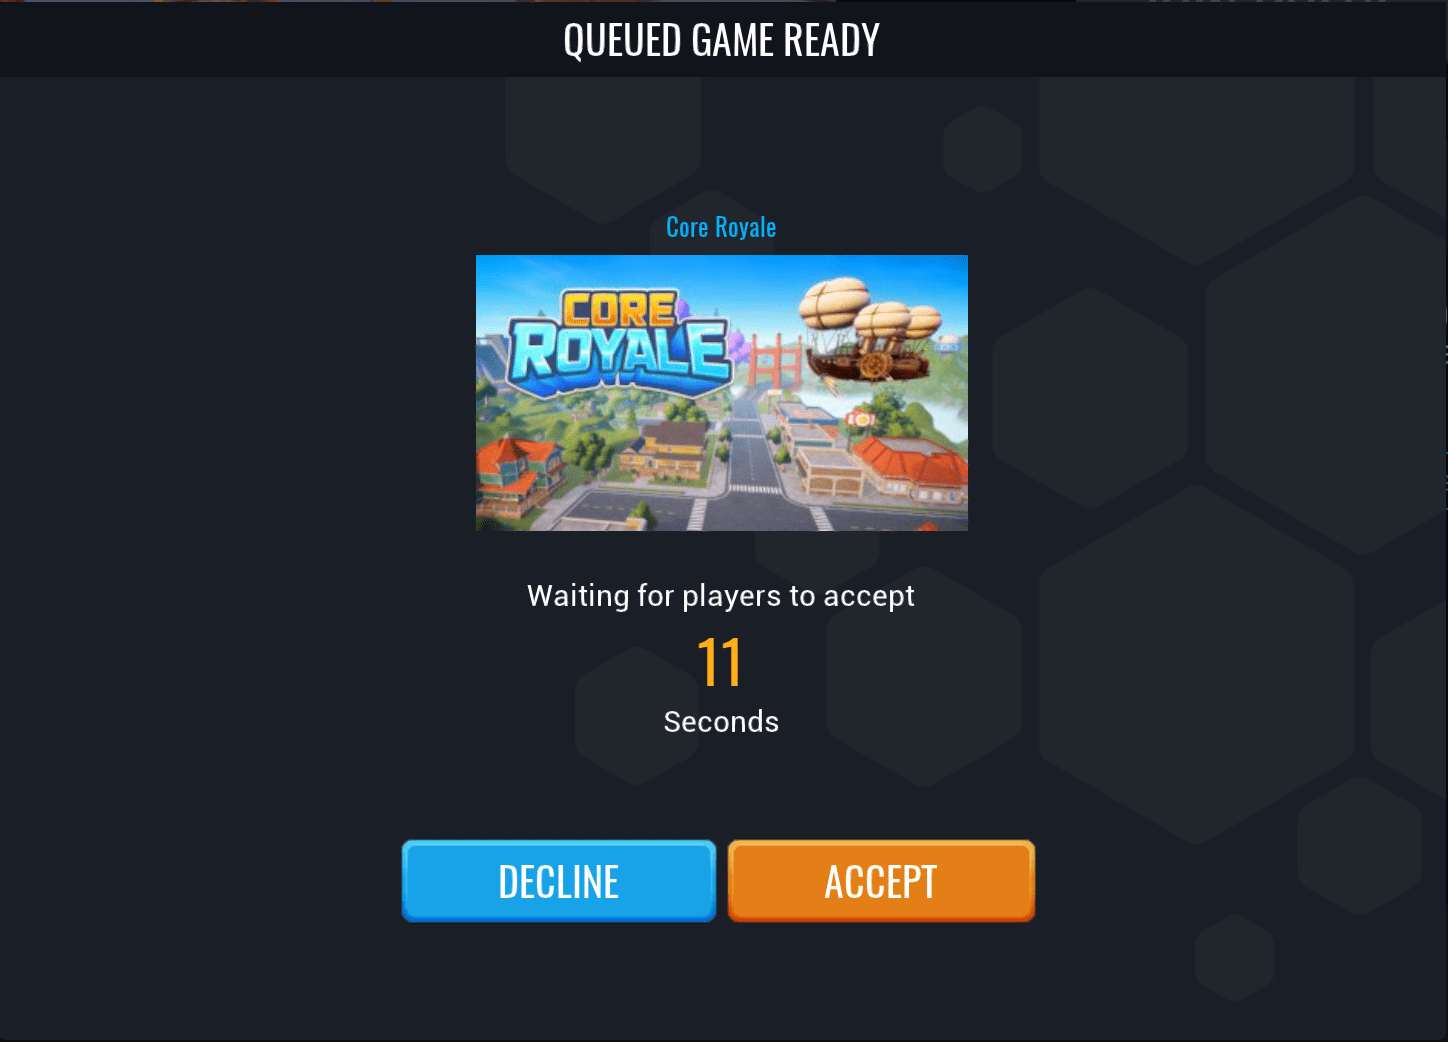 Queued Game Ready pop-up